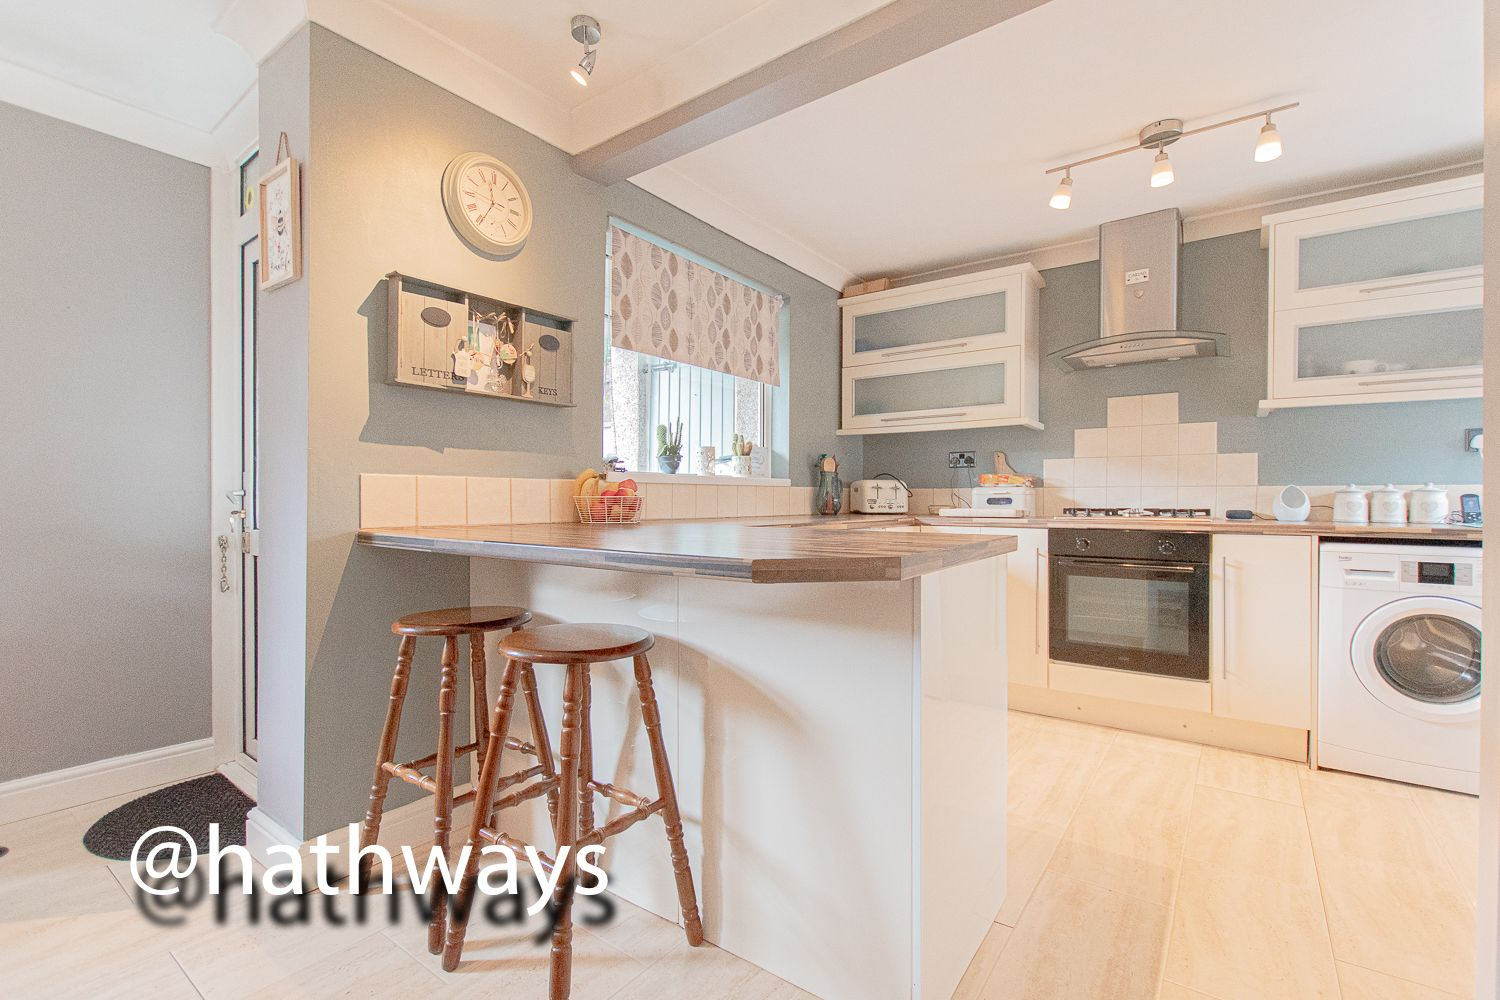 3 bed house for sale in The Haldens - Property Image 1